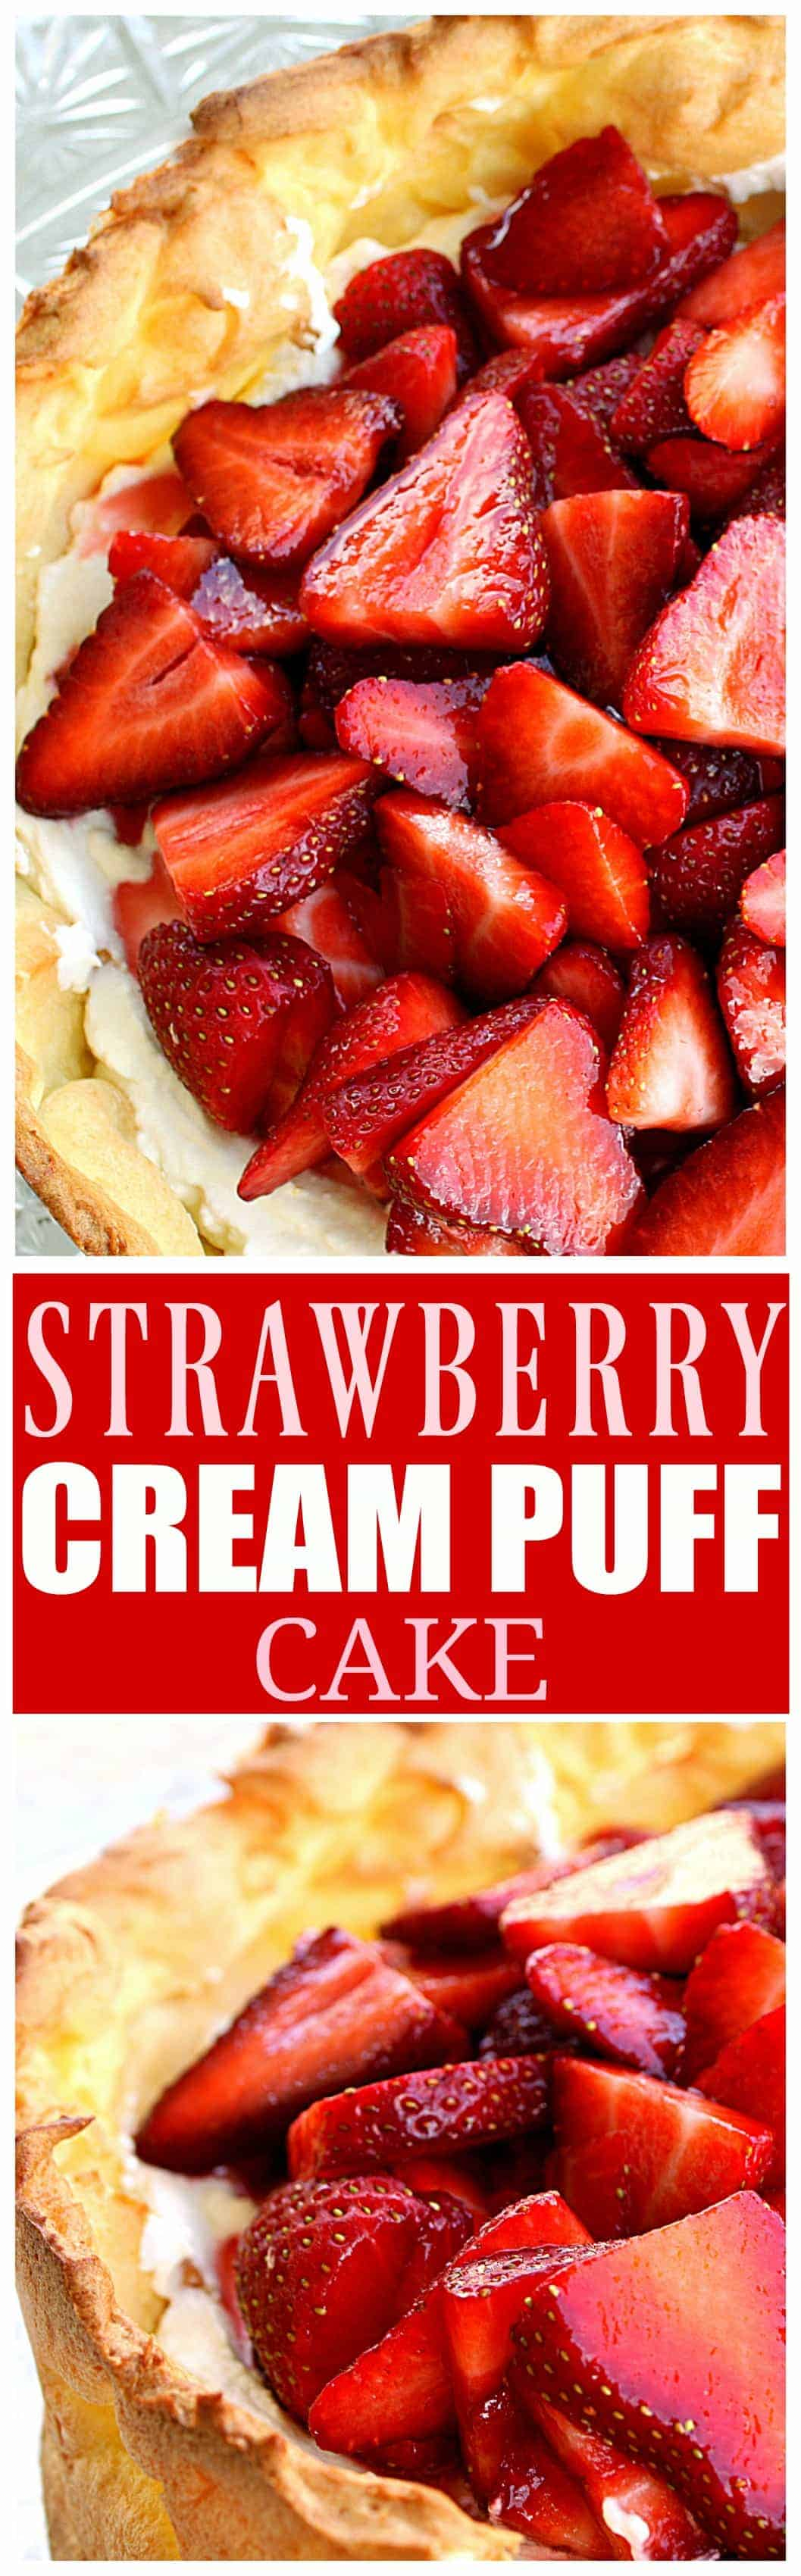 Strawberry Cream Puff Cake - light and airy like an eclair with sweetened cream and strawberries. #strawberries #cream #cake #dessert #summer